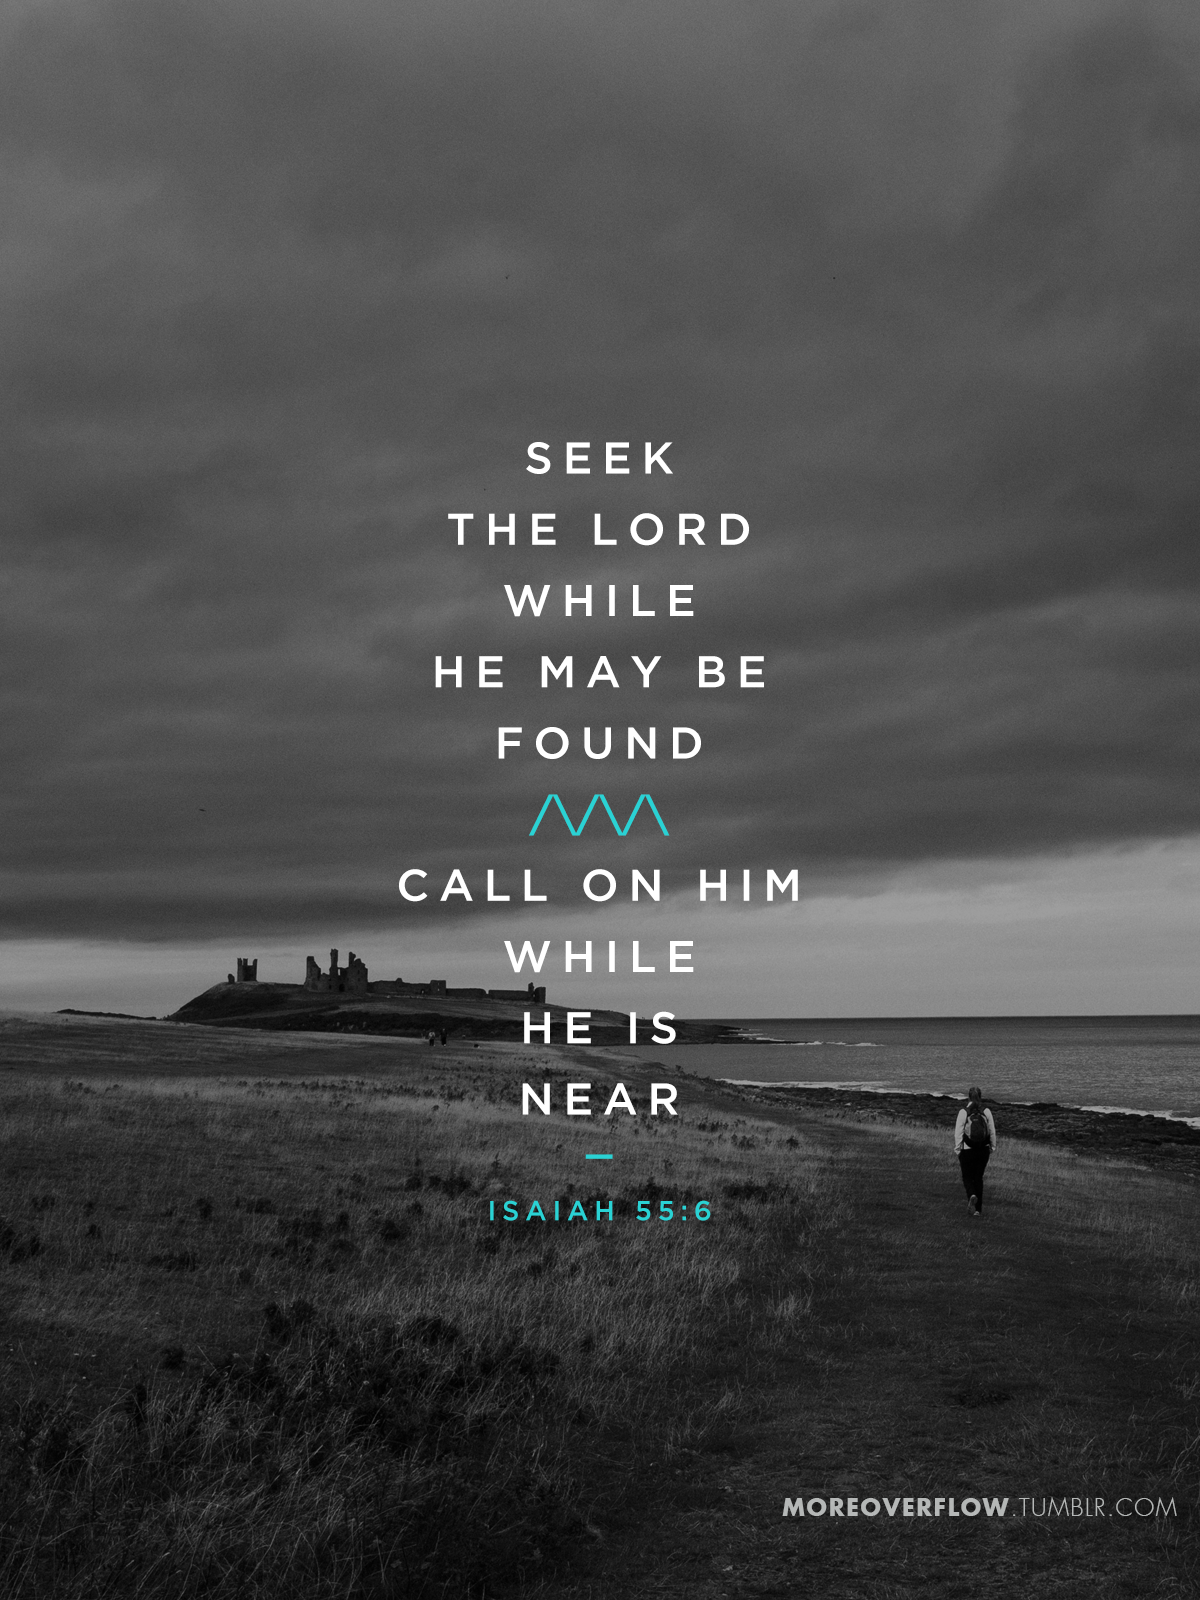 Seek the Lord while He may be found, call on him while he is near Isaiah 55:6 (+) #30DaysOfBibleLettering